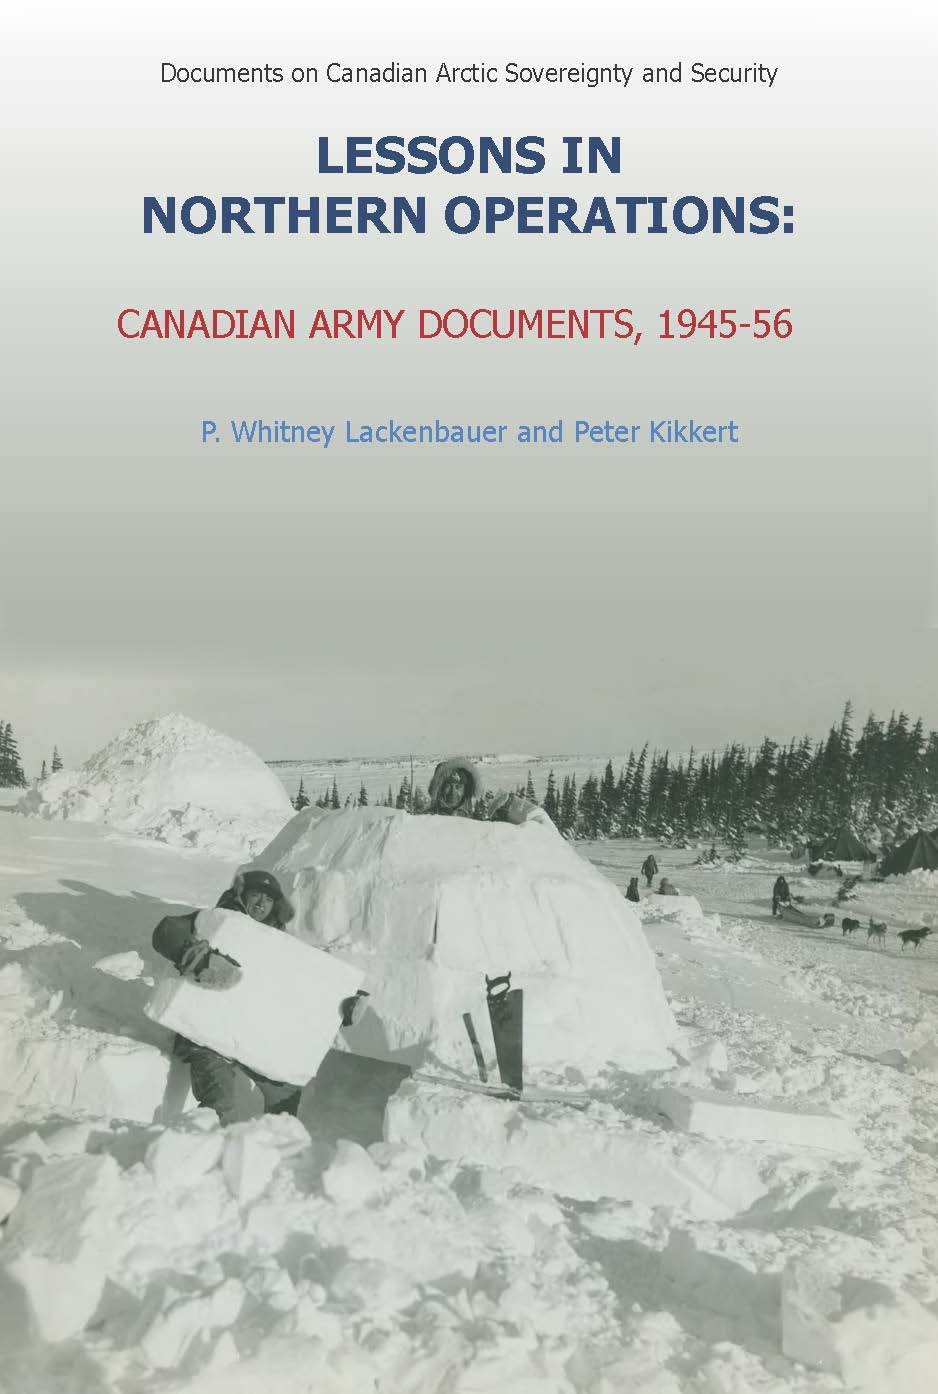 Lessons in Arctic operations : the Canadian army experience, 1945-1956